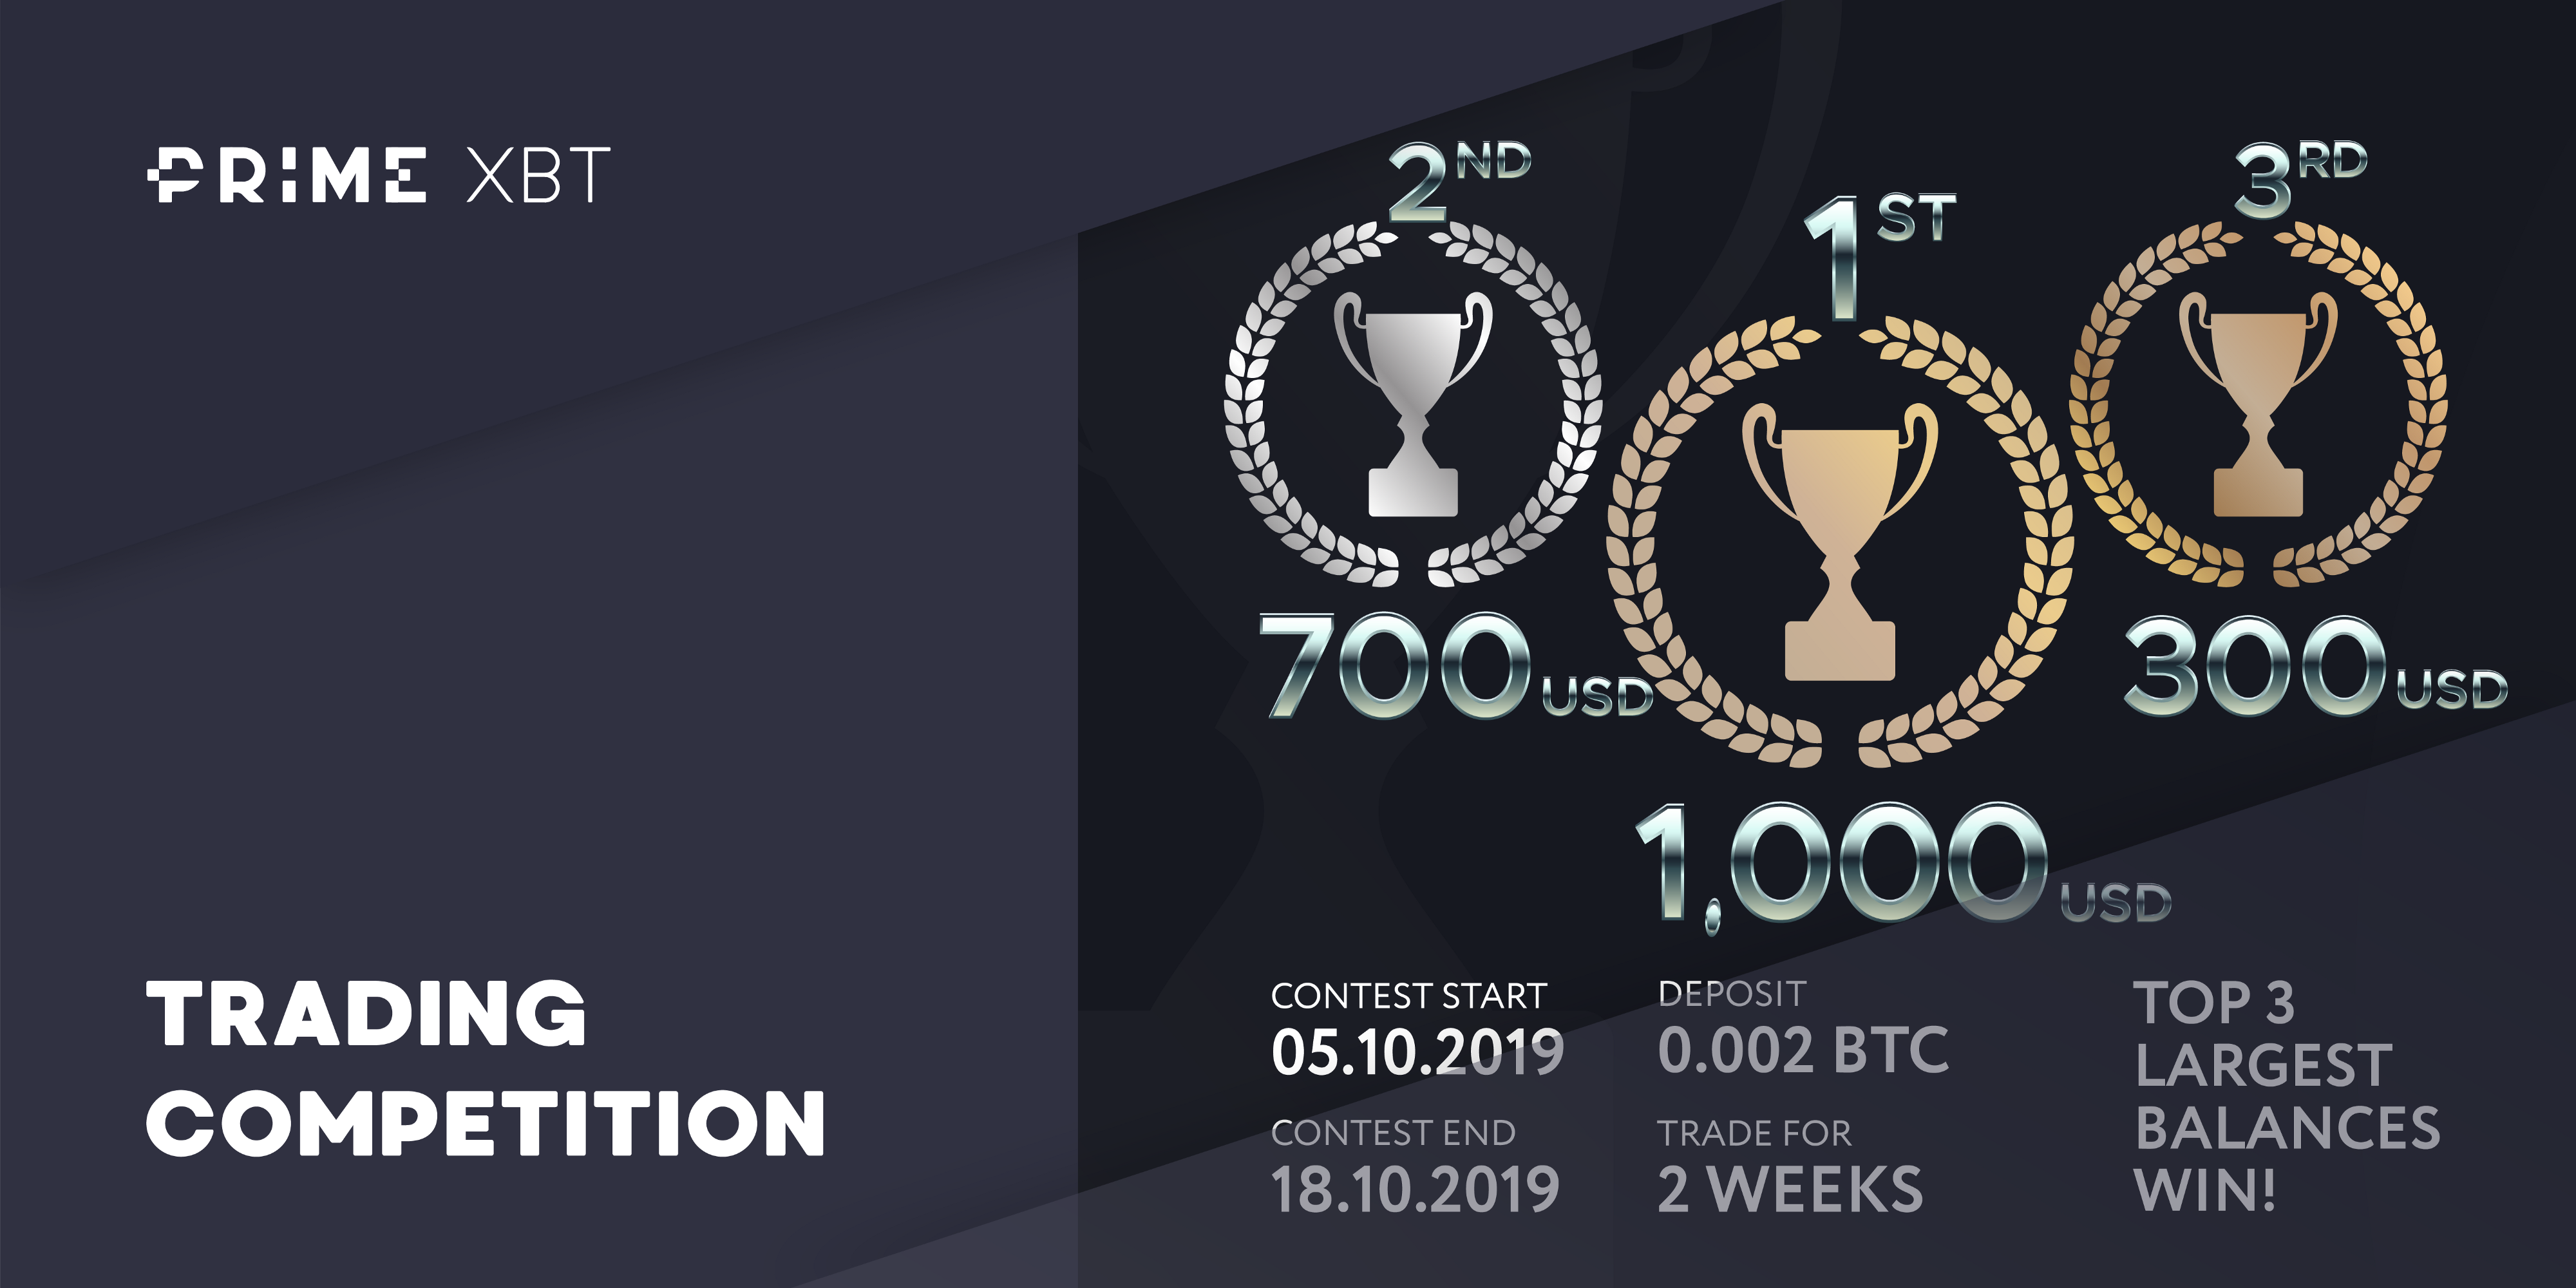 PrimeXBT Trading Competition: Turn 0.002 BTC into $1,000 - 31.10 Blog TC